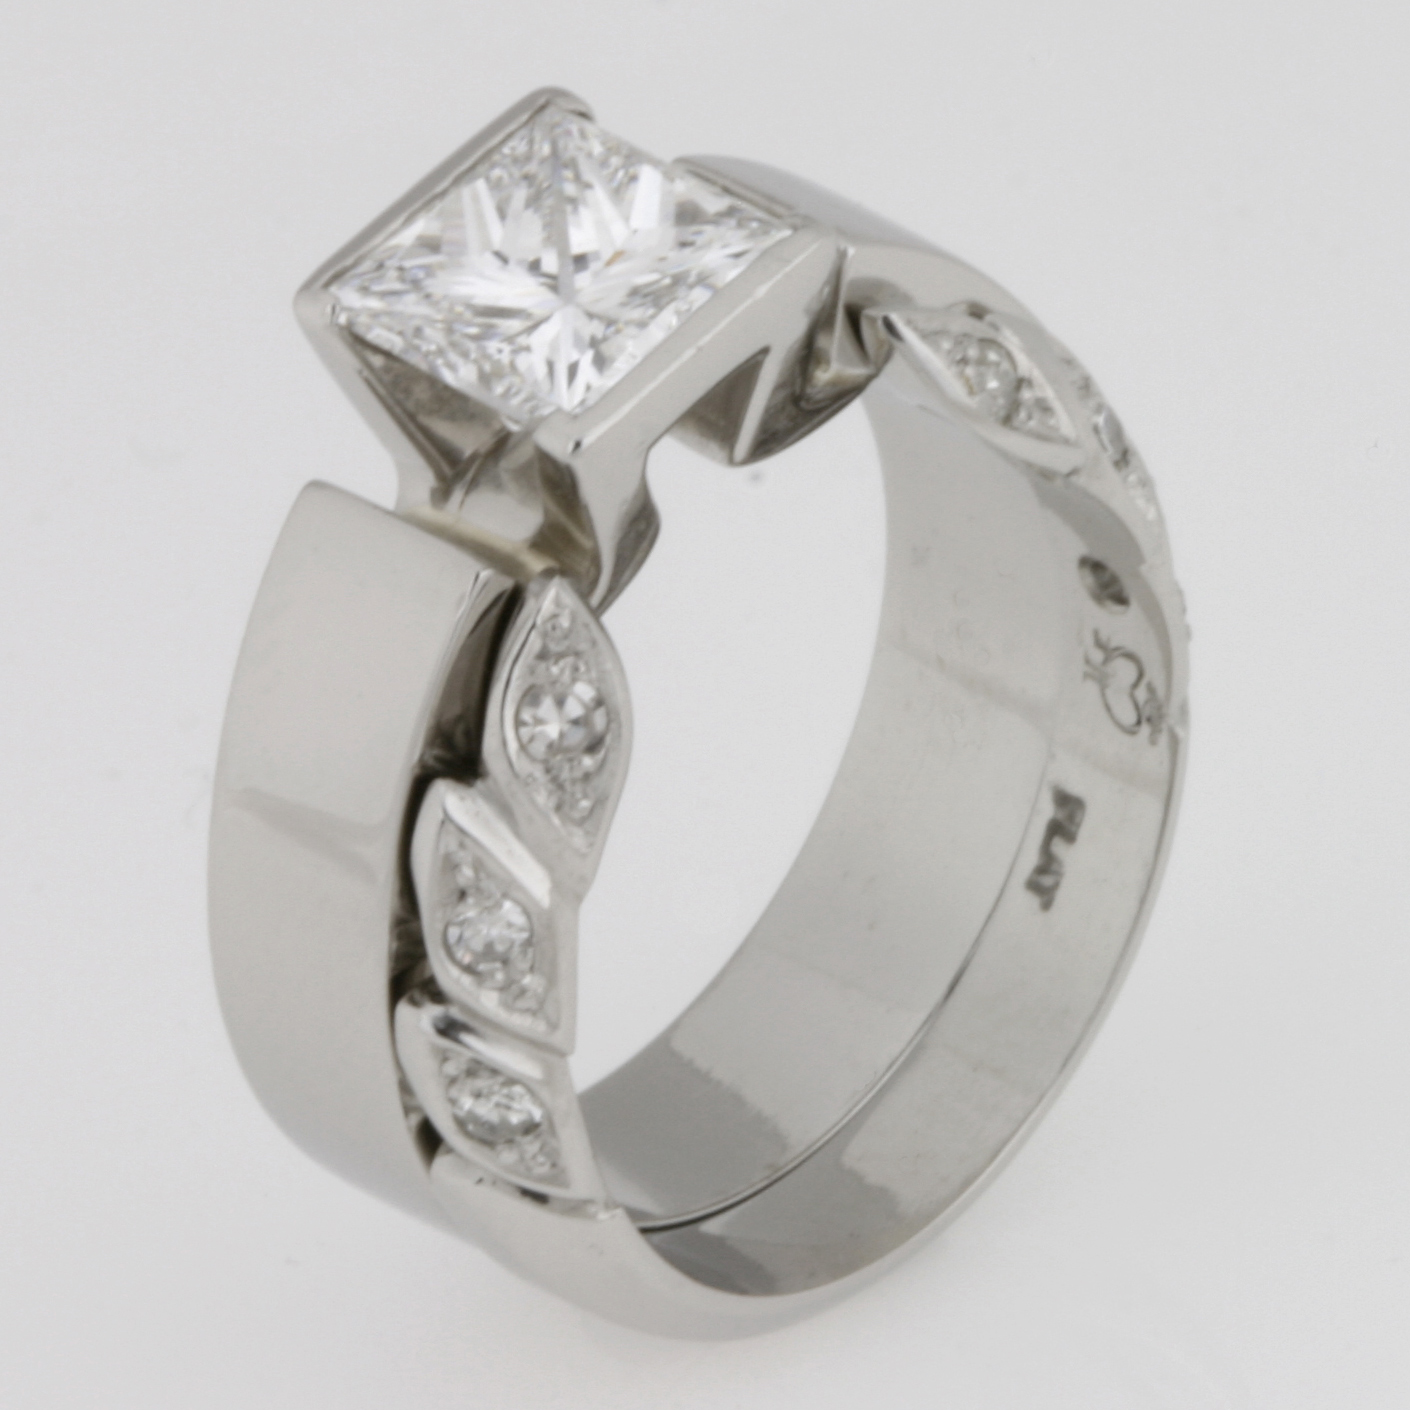 Handmade ladies platinum diamond engagement and wedding ring set